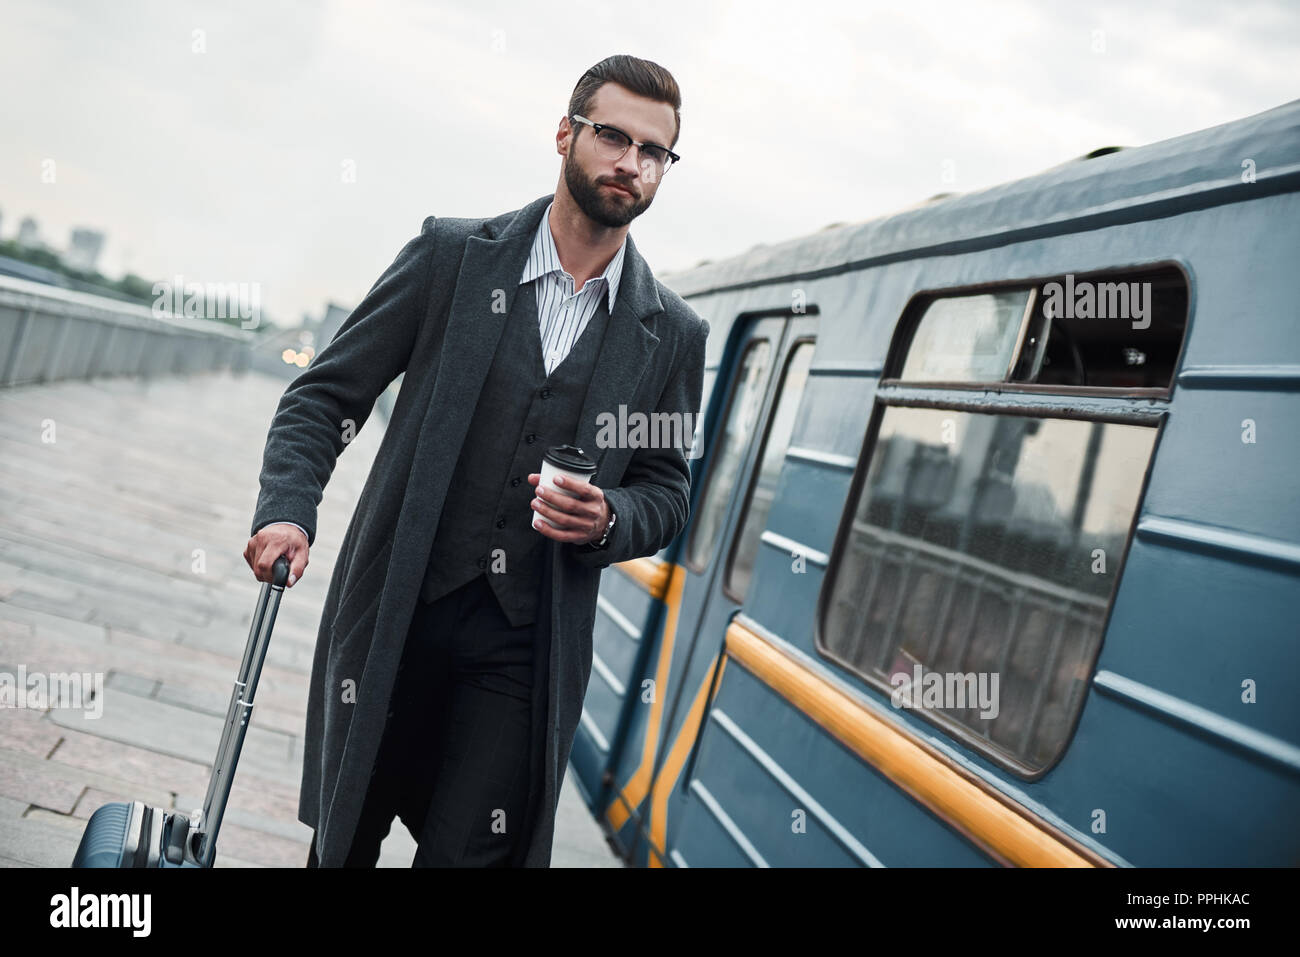 Business trip. Young businessman walking near railway with luggage holding cup drinking hot coffee - Stock Image